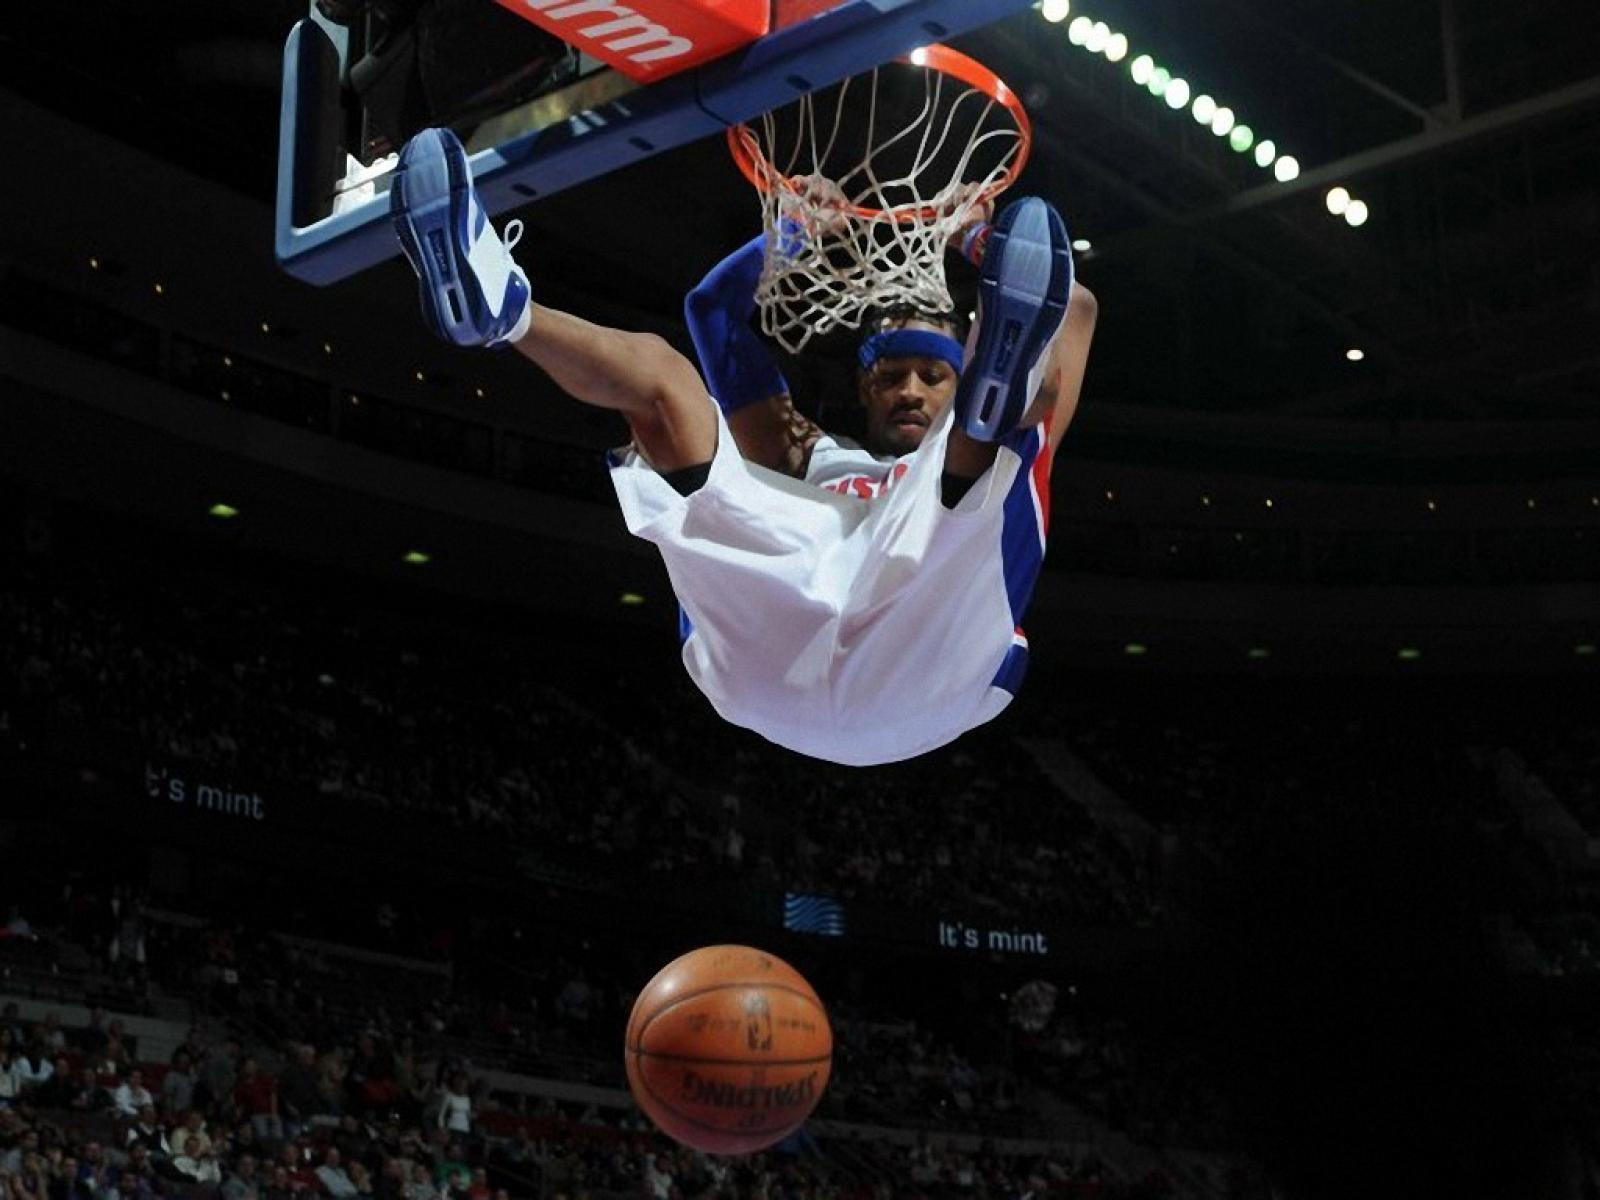 Allen Iverson Jumping (not just - 132.7KB